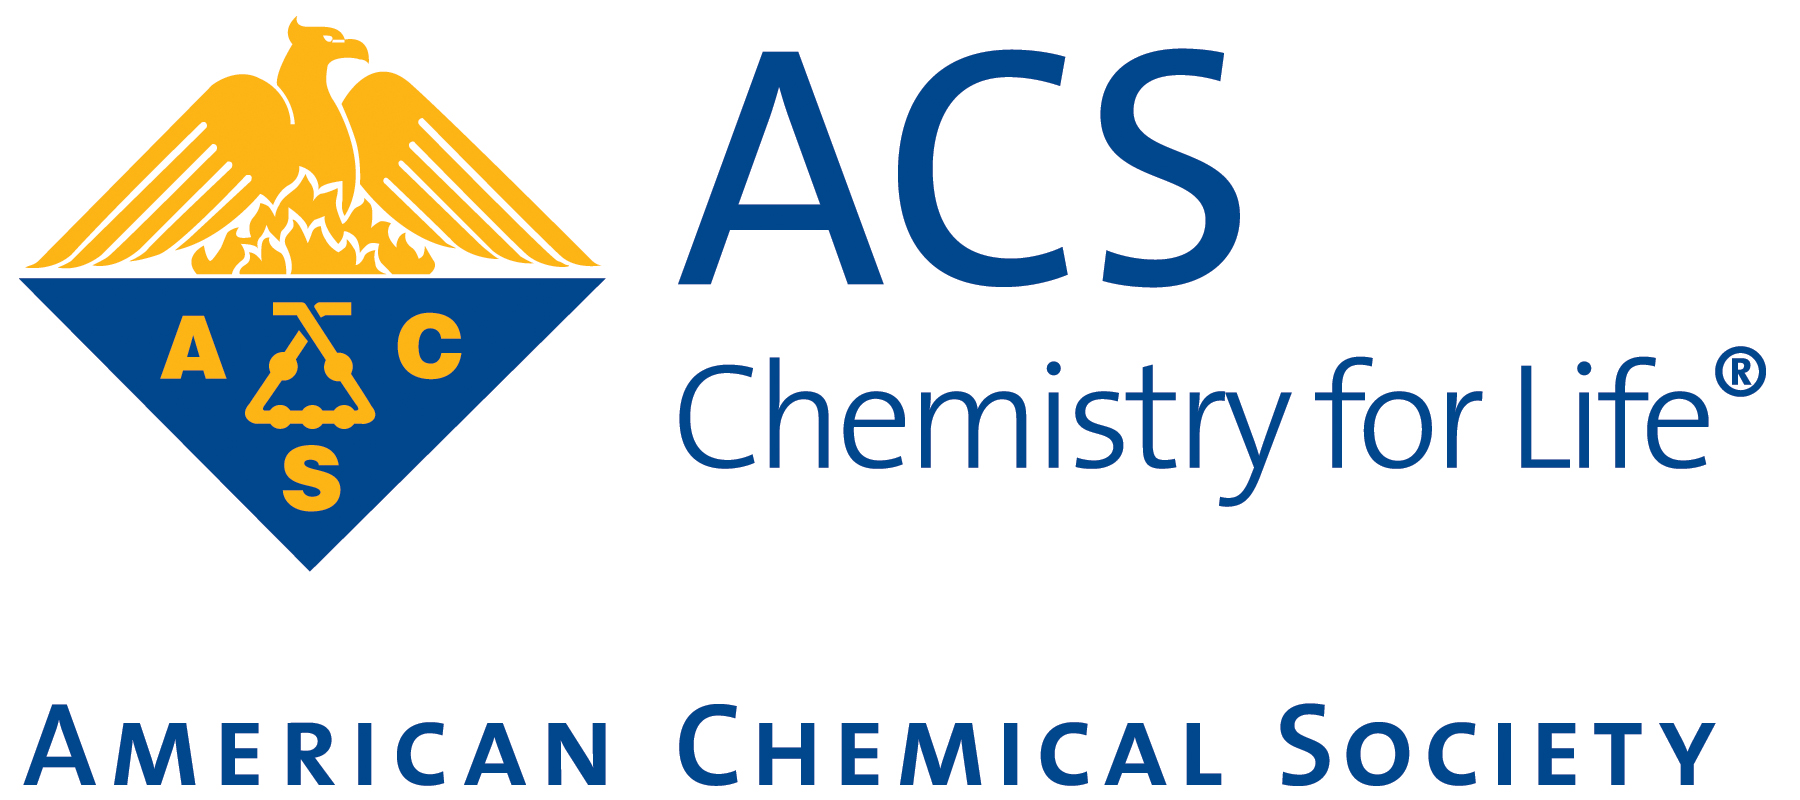 American Chemical Society logos and style guide.